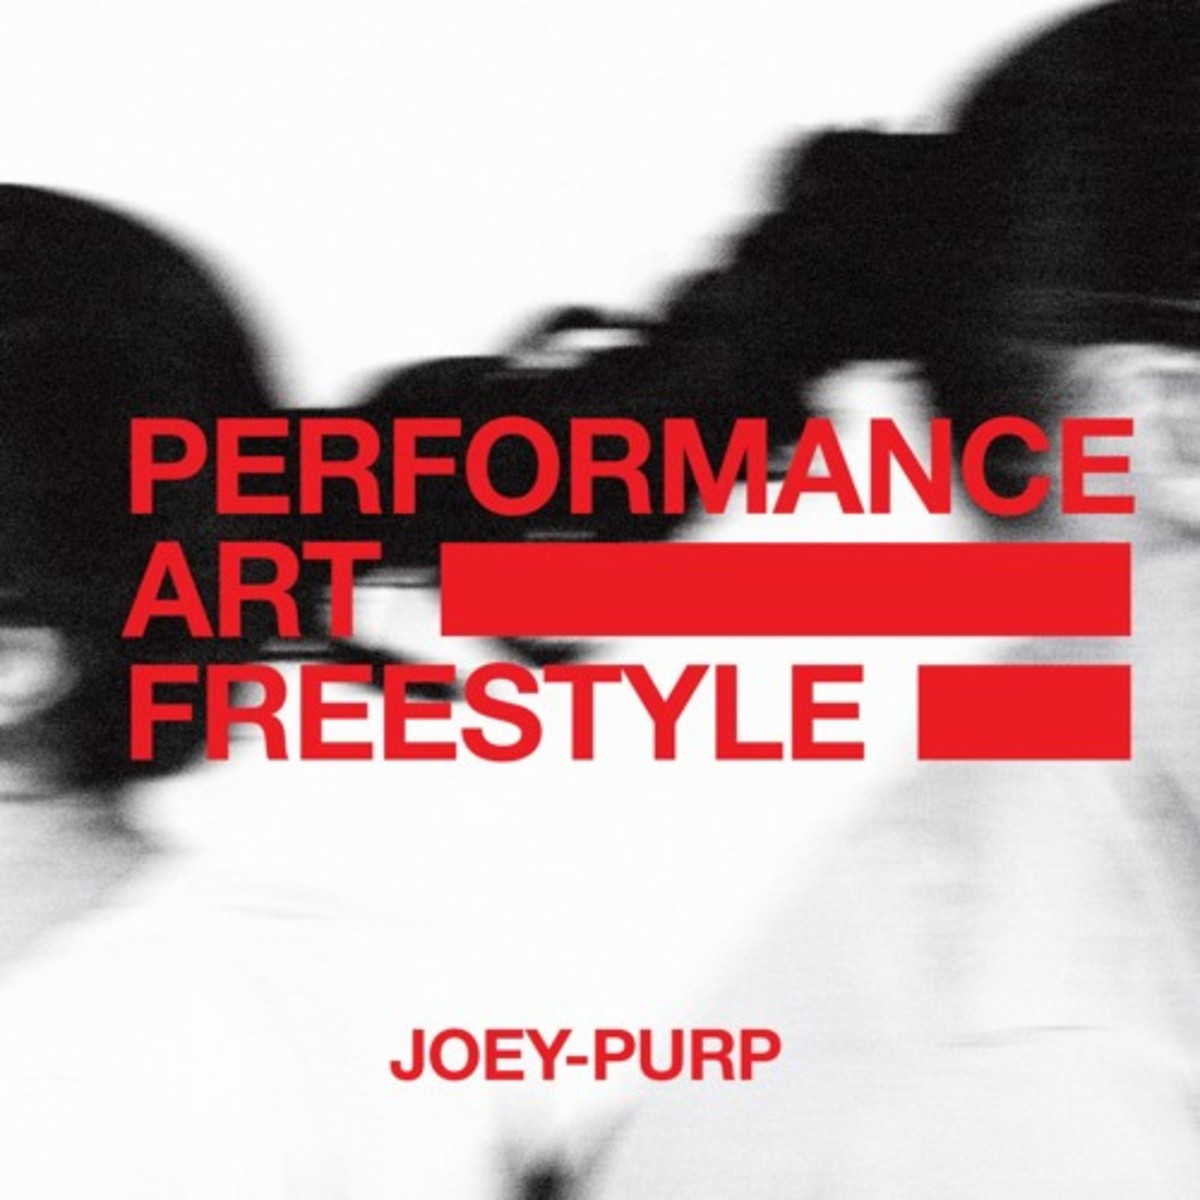 joey-purp-performance-art-freestyle.jpg